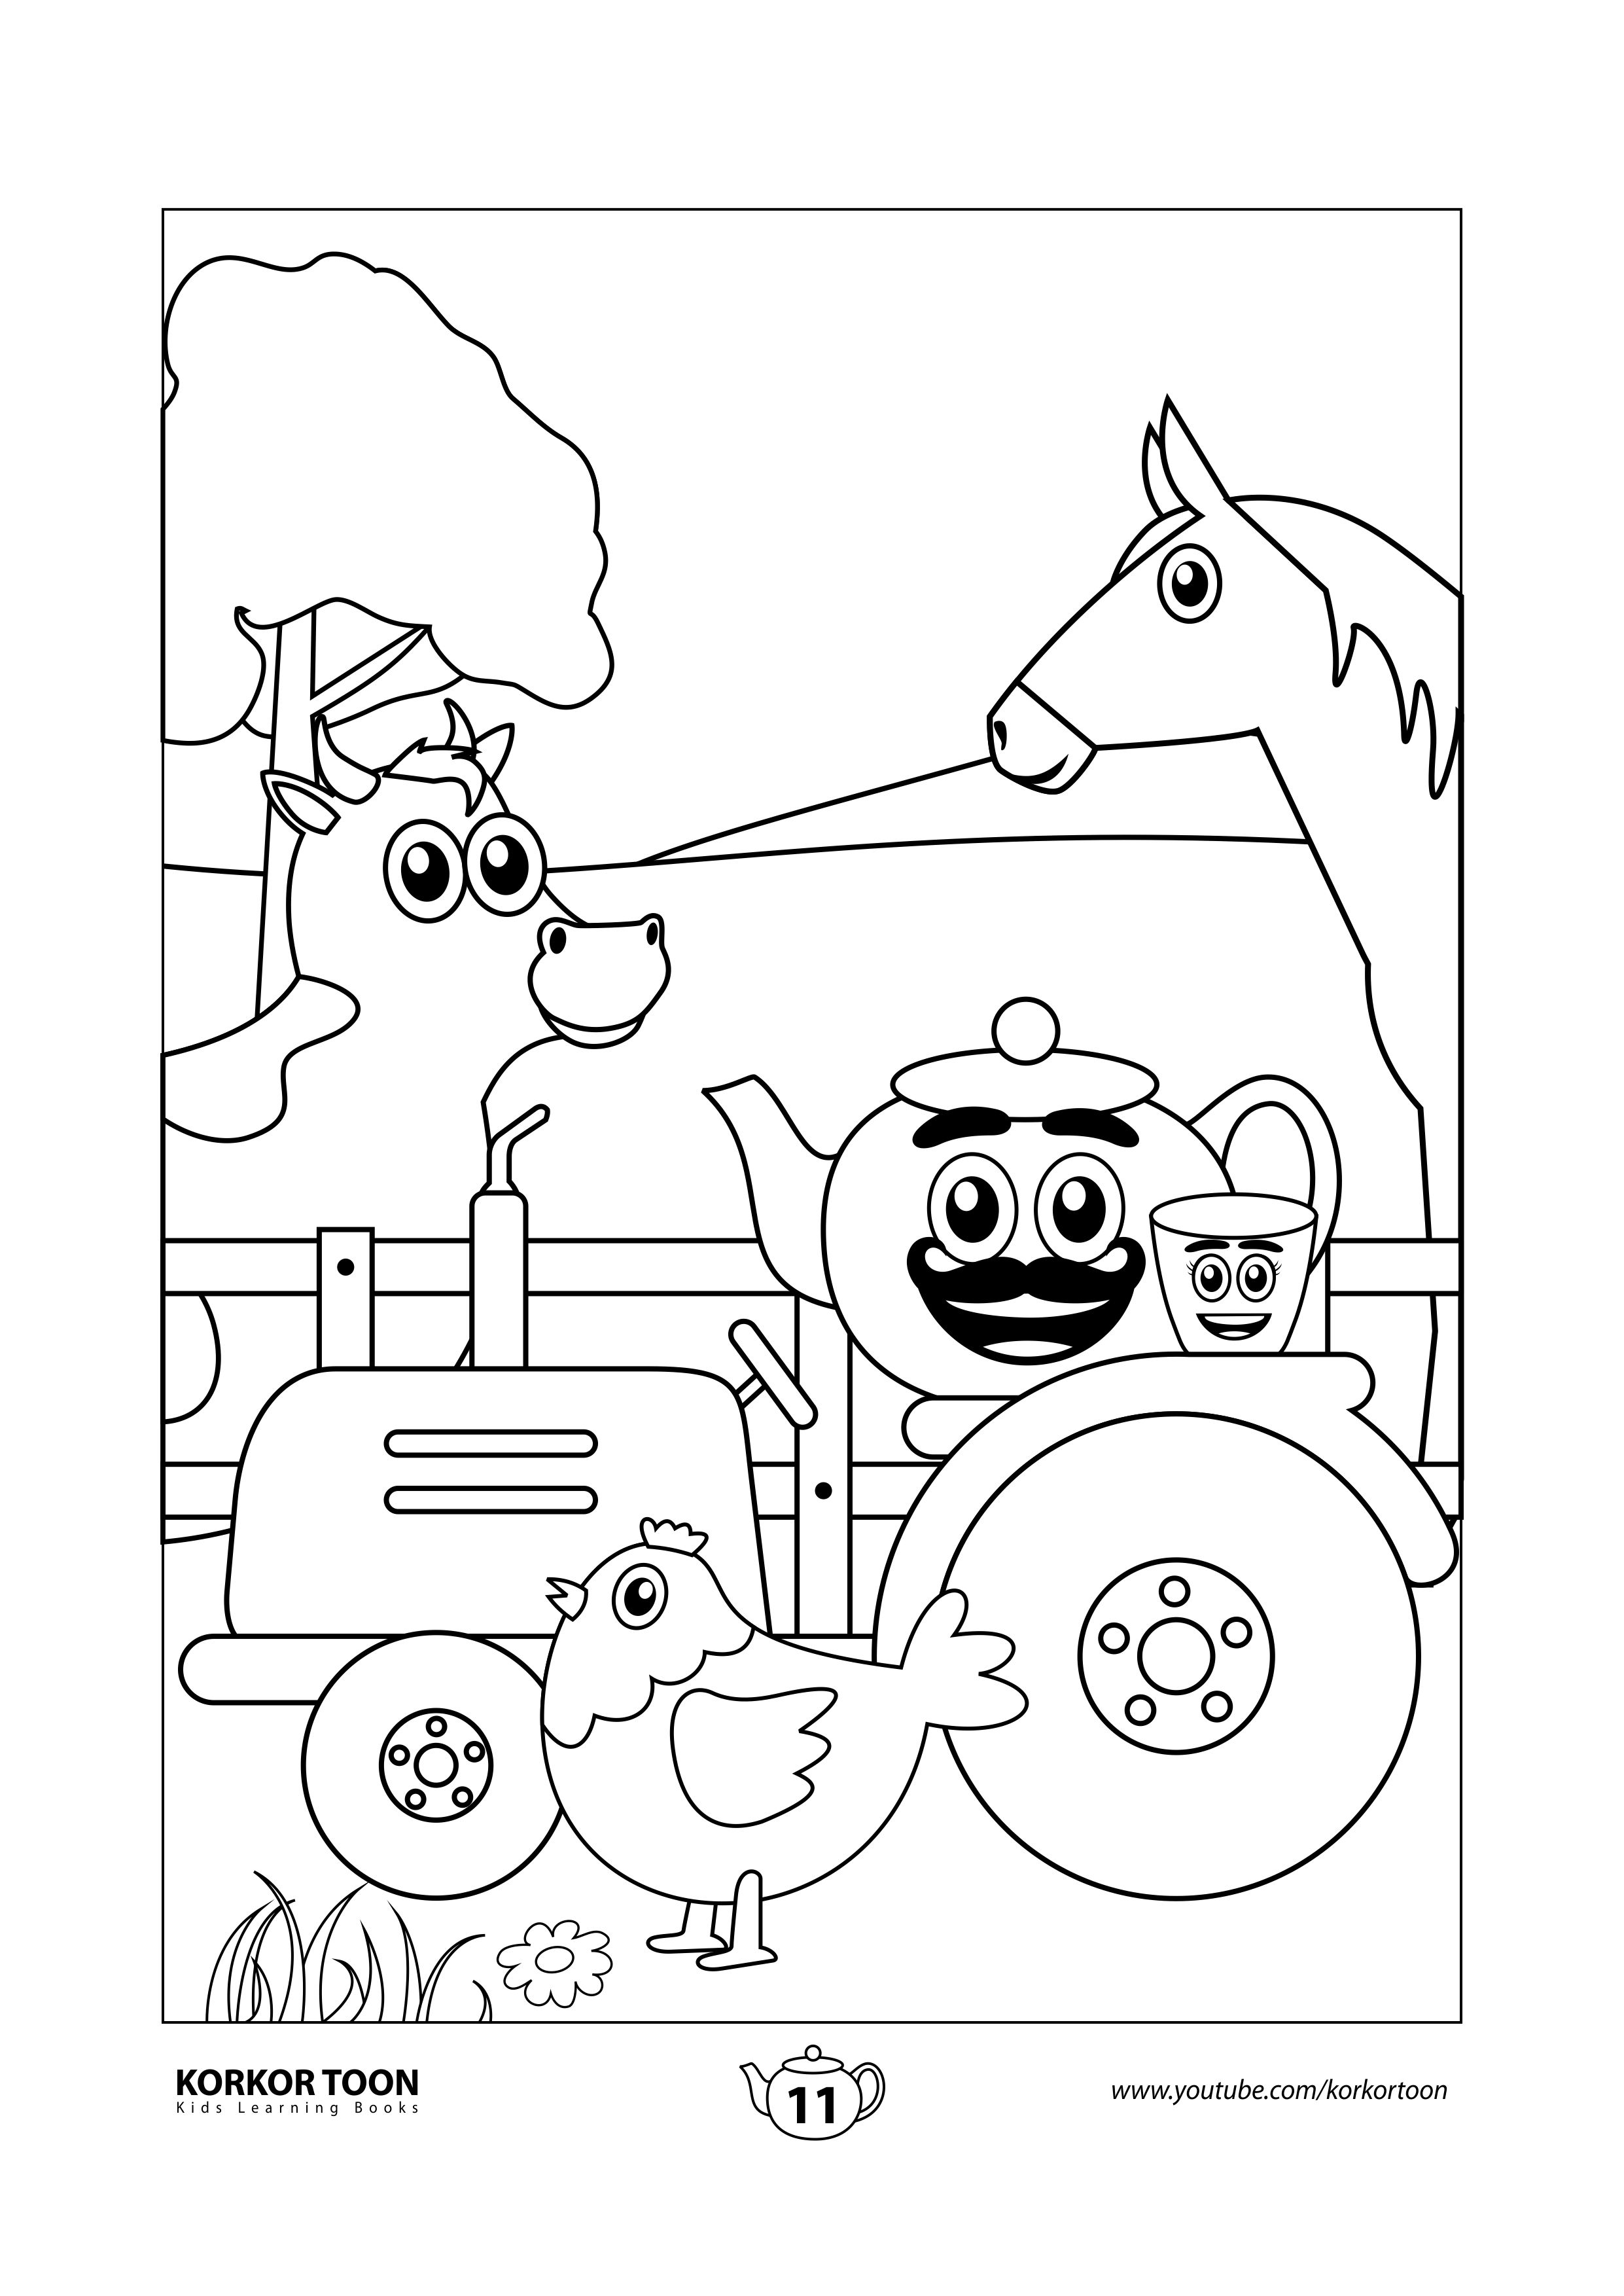 Farm Animals Coloring Page Farm Animals Coloring Book Animal Coloring Books Animal Coloring Pages Farm Coloring Pages